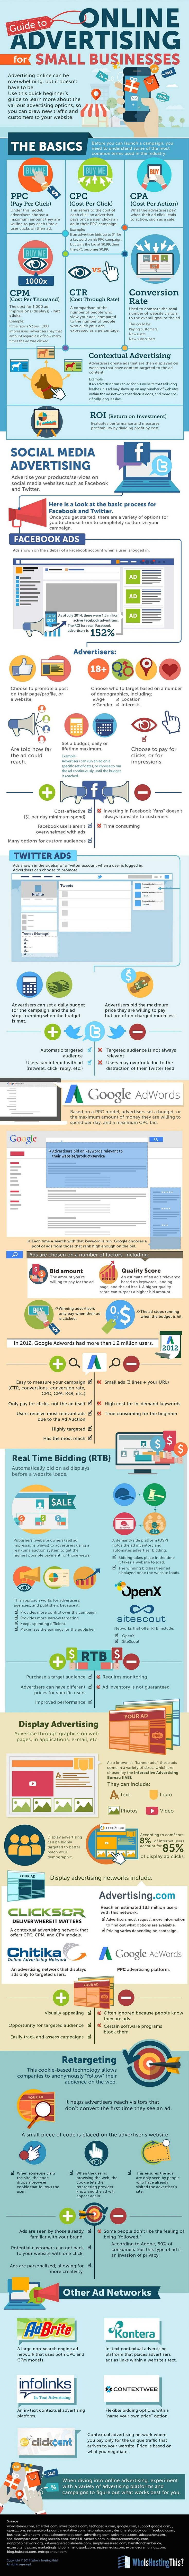 Guide To Google Adwords and Social Media Advertising For Small Businesses - #infographic